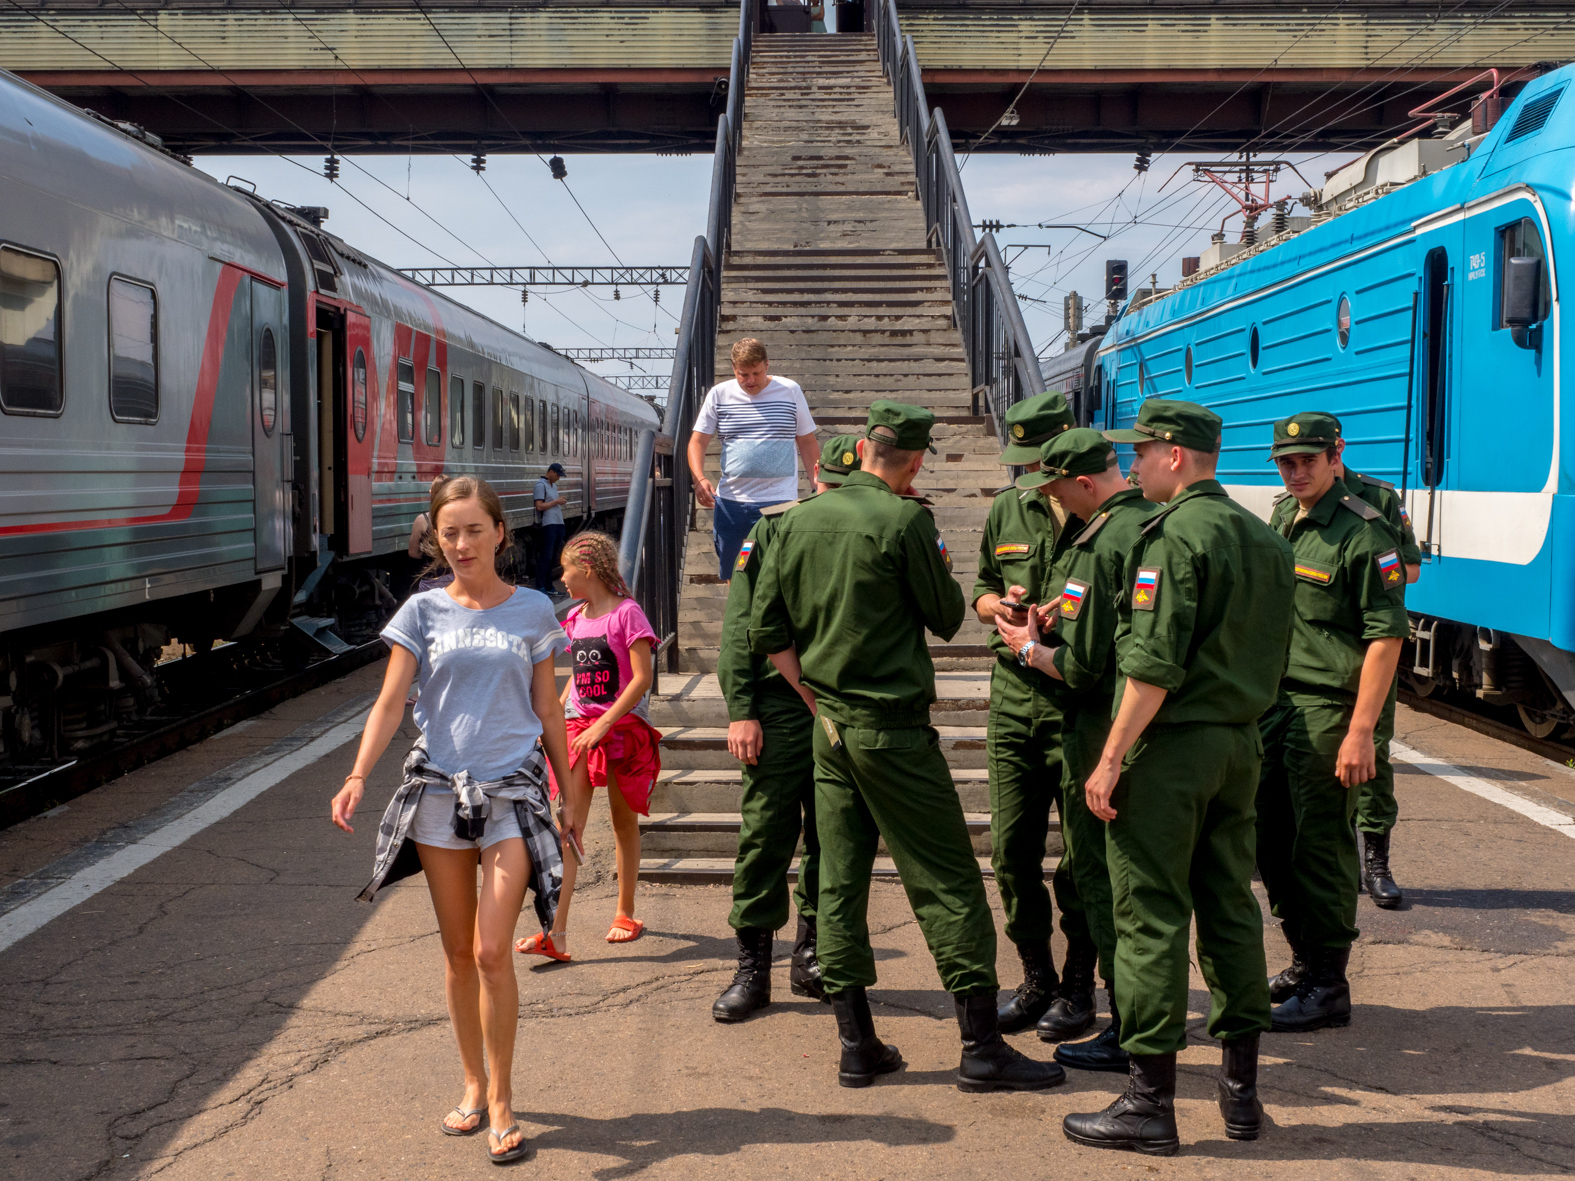 Soldiers and civilians during a station stop on the Trans-Siberian Railway from Moscow-Vladivostok. Spanning a length of 9,289km, it's the longest uninterrupted single country train journey in the world. It has connected Moscow with Vladivostok since 1916, and is still being expanded. It was built between 1891 and 1916 under the supervision of Russian government ministers personally appointed by Tsar Alexander III and his son, the Tsarevich Nicholas (later Tsar Nicholas II).